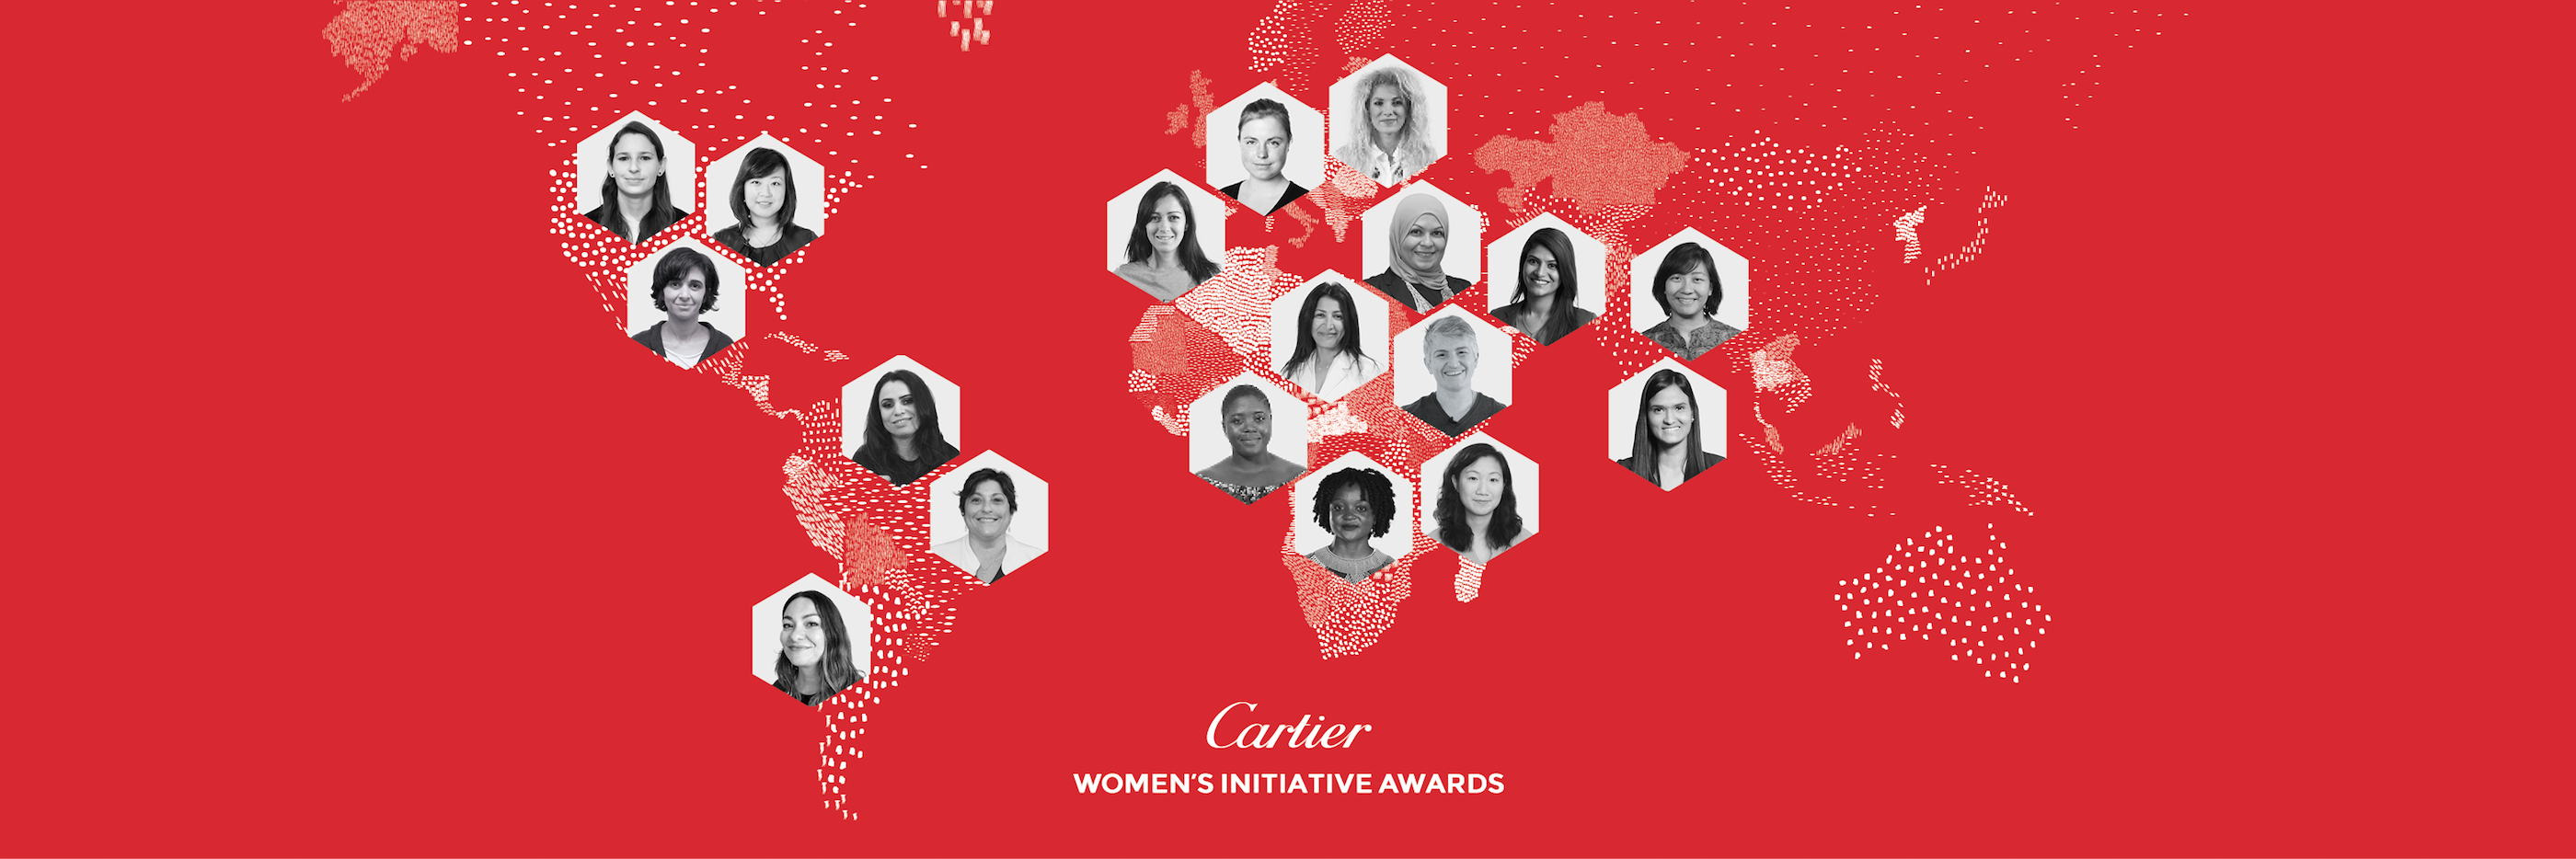 Cartier women's initiative awards 2018